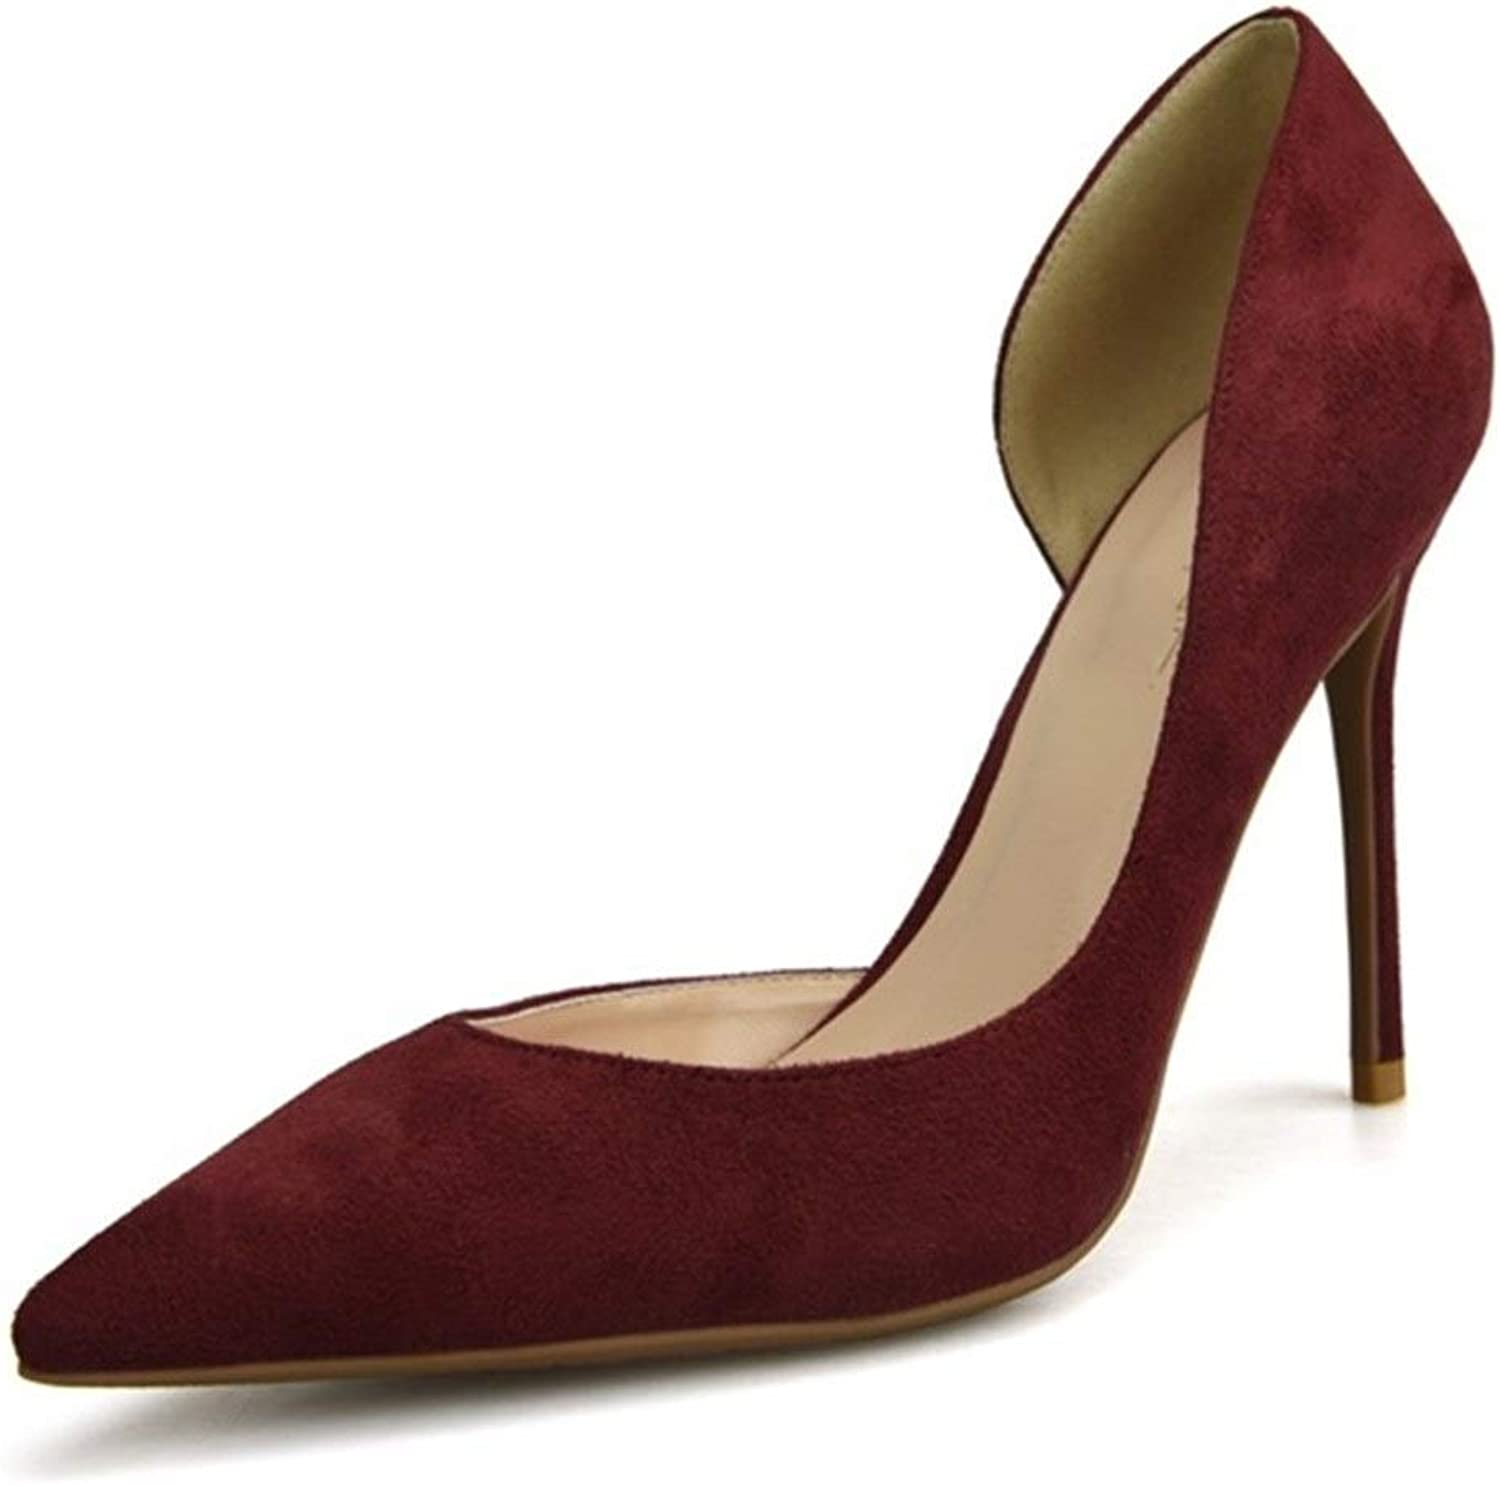 ZerenQ D'Orsay Pumps for Women High Stiletto Heels Side Cut Sexy Pointed Toe Dress Sandals for Ladies Party Wedding shoes Slip On Suede Pumps Durable (color   Red 8 cm Heel, Size   5.5 M US)